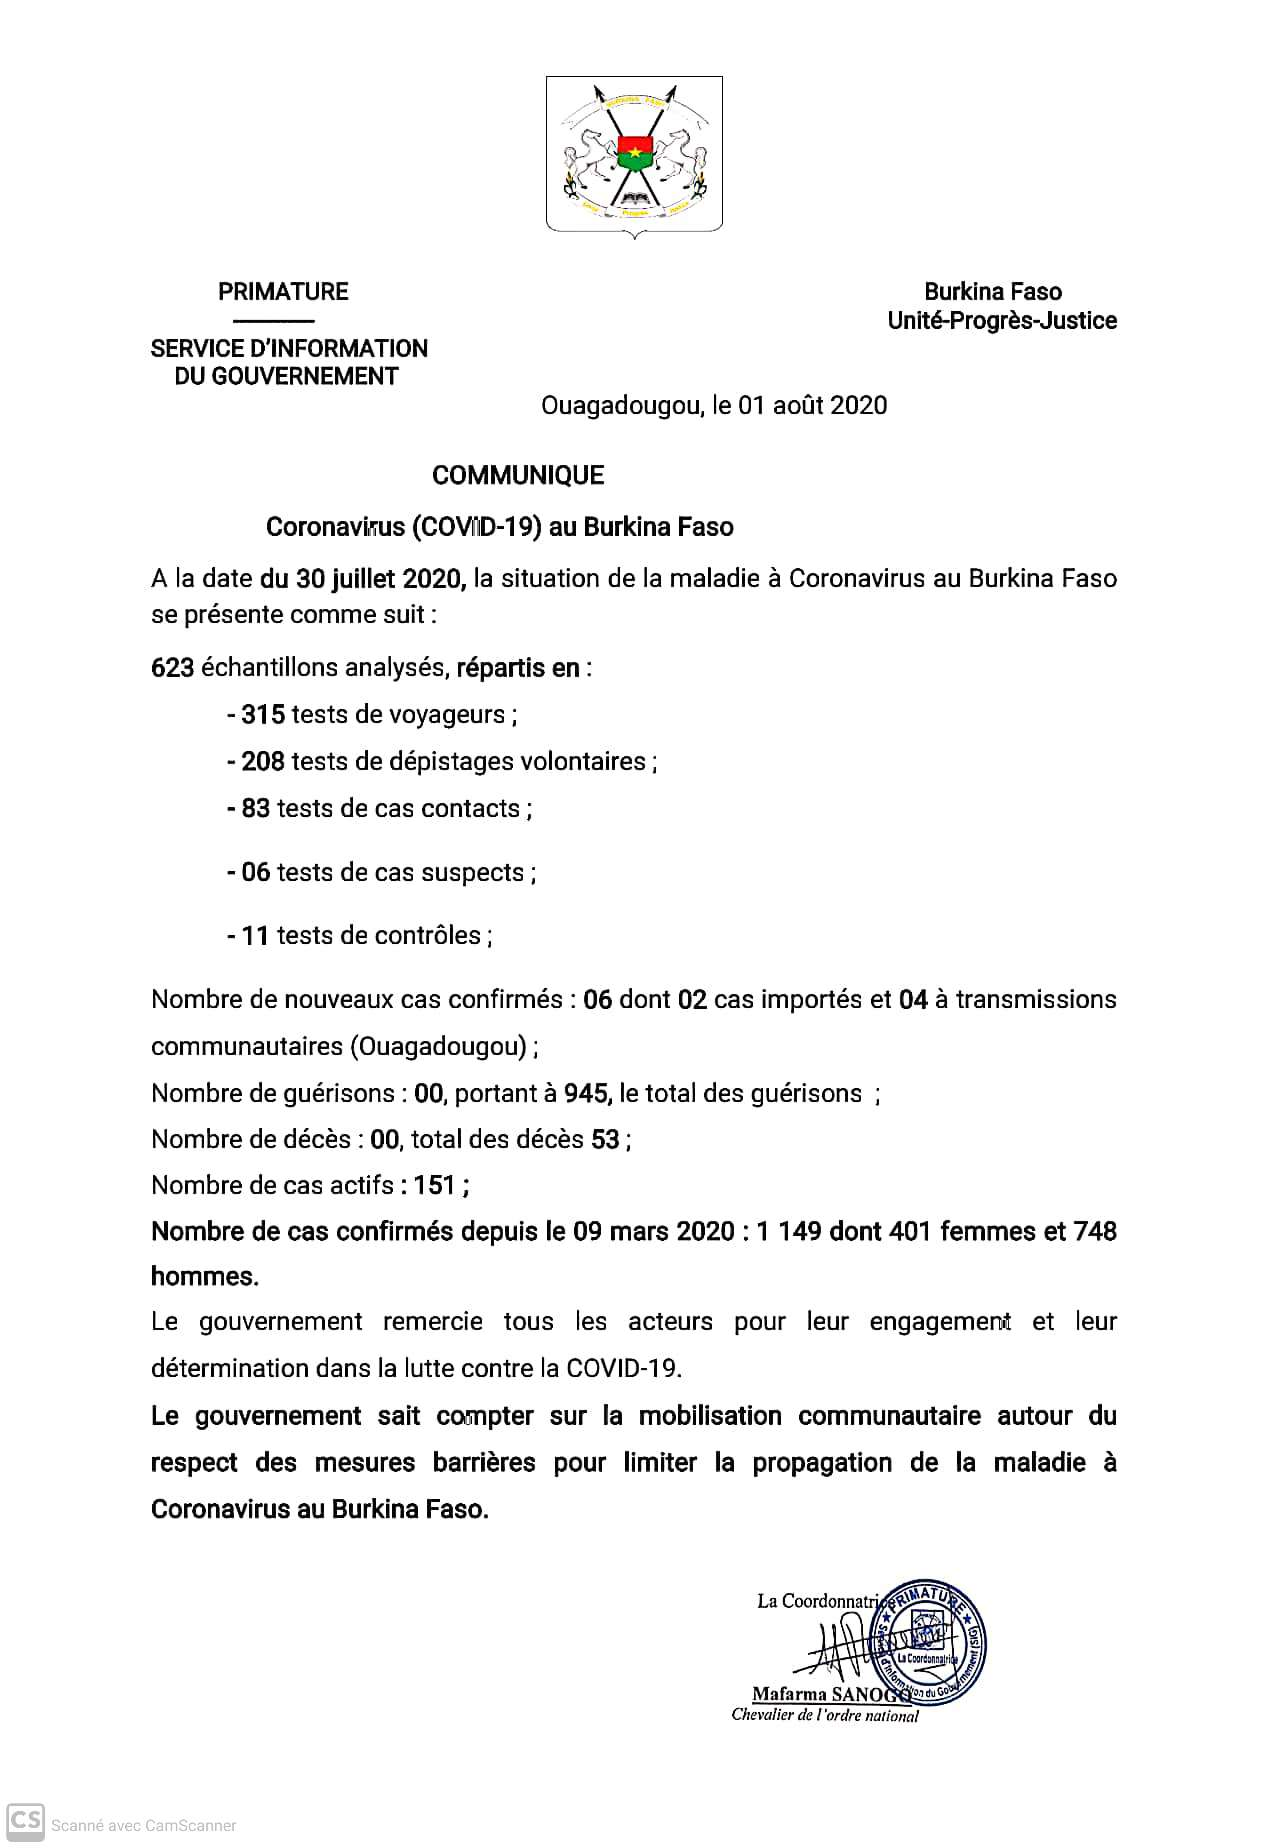 https://www.sig.gov.bf/fileadmin/user_upload/Communique___point__Covid-19_Burkina_Faso_30_juillet_2020.jpg